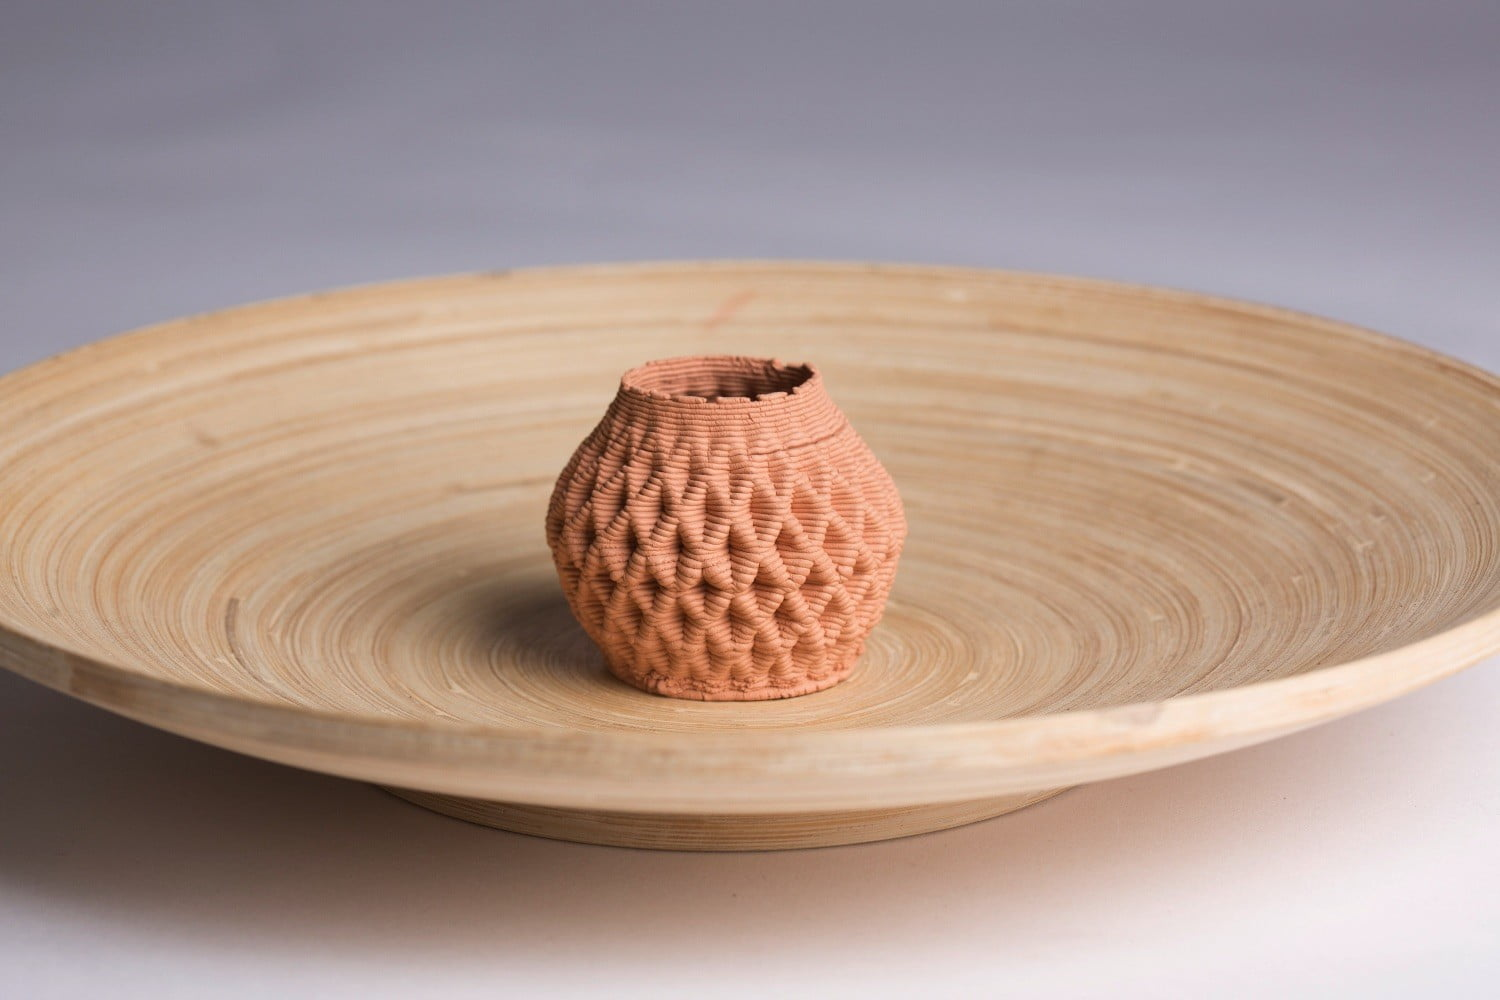 3d clay printer gives bowls vases 21st century spin clayxyz model